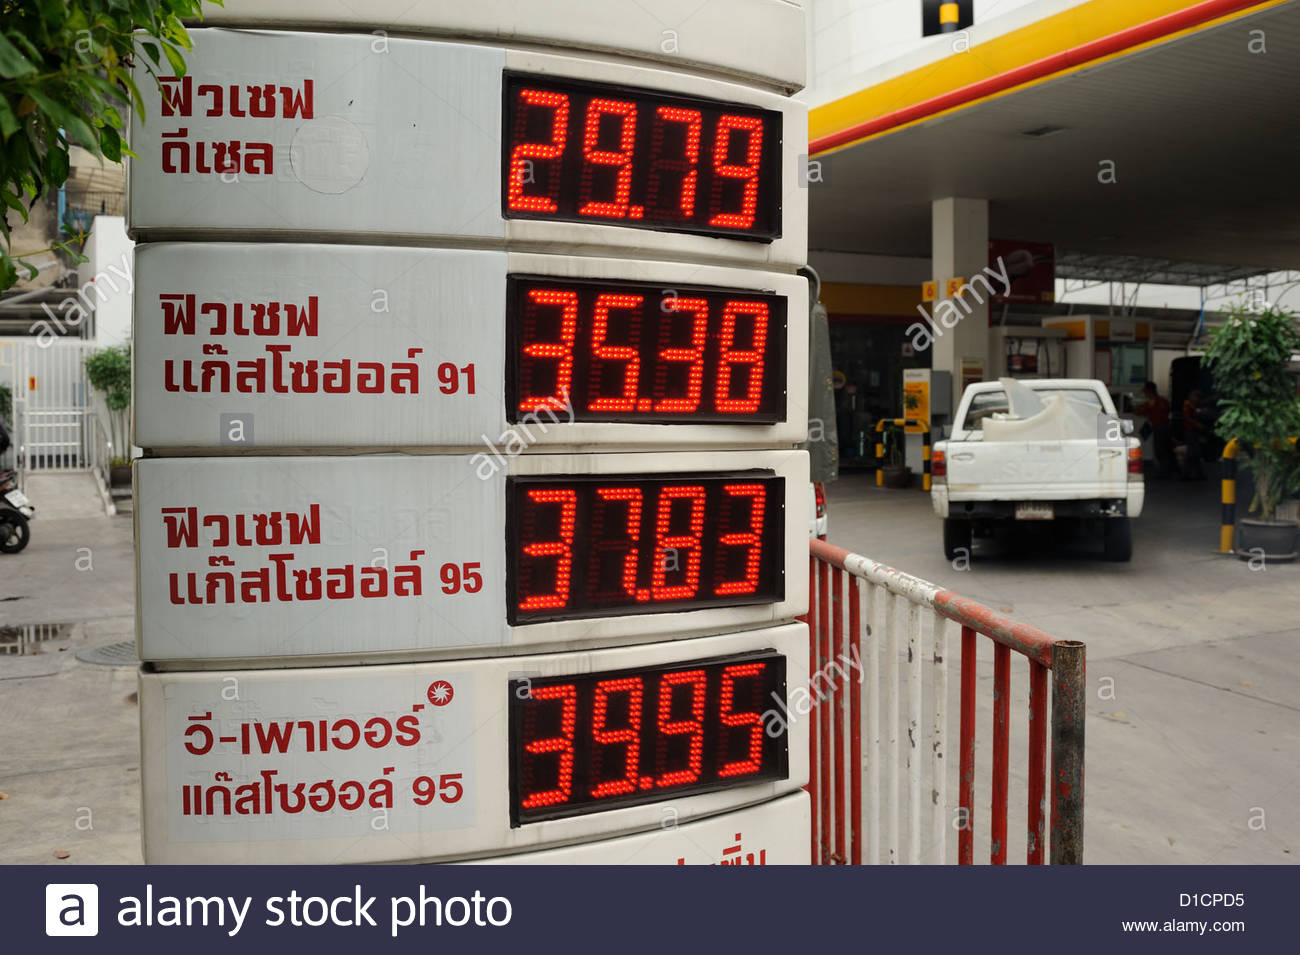 Bangkok Thailand petrol prices Stock Photo: 52526801 - Alamy